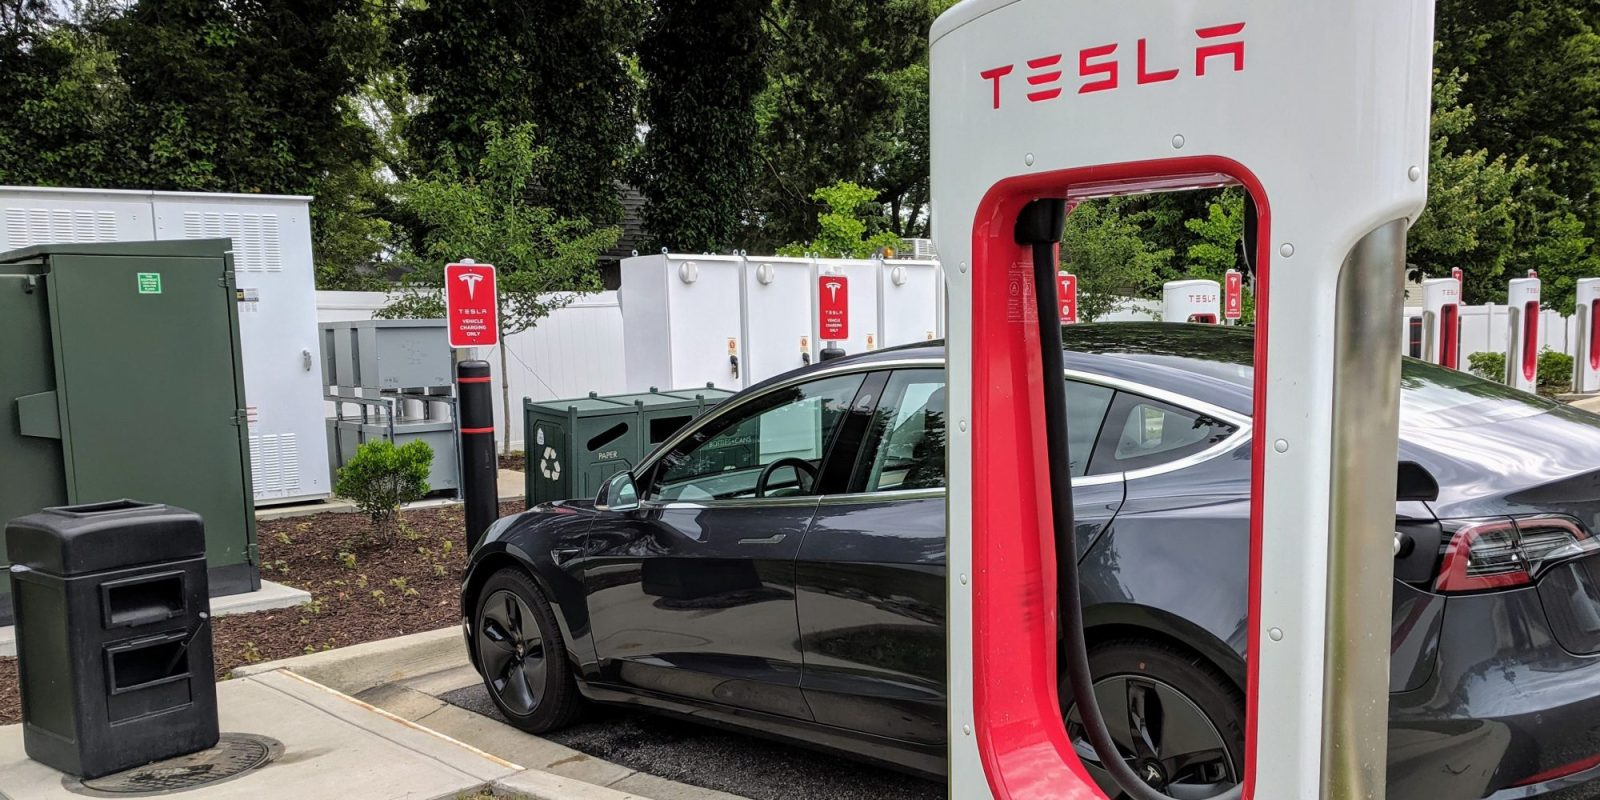 California bans per-minute billing; Tesla Superchargers will need displays